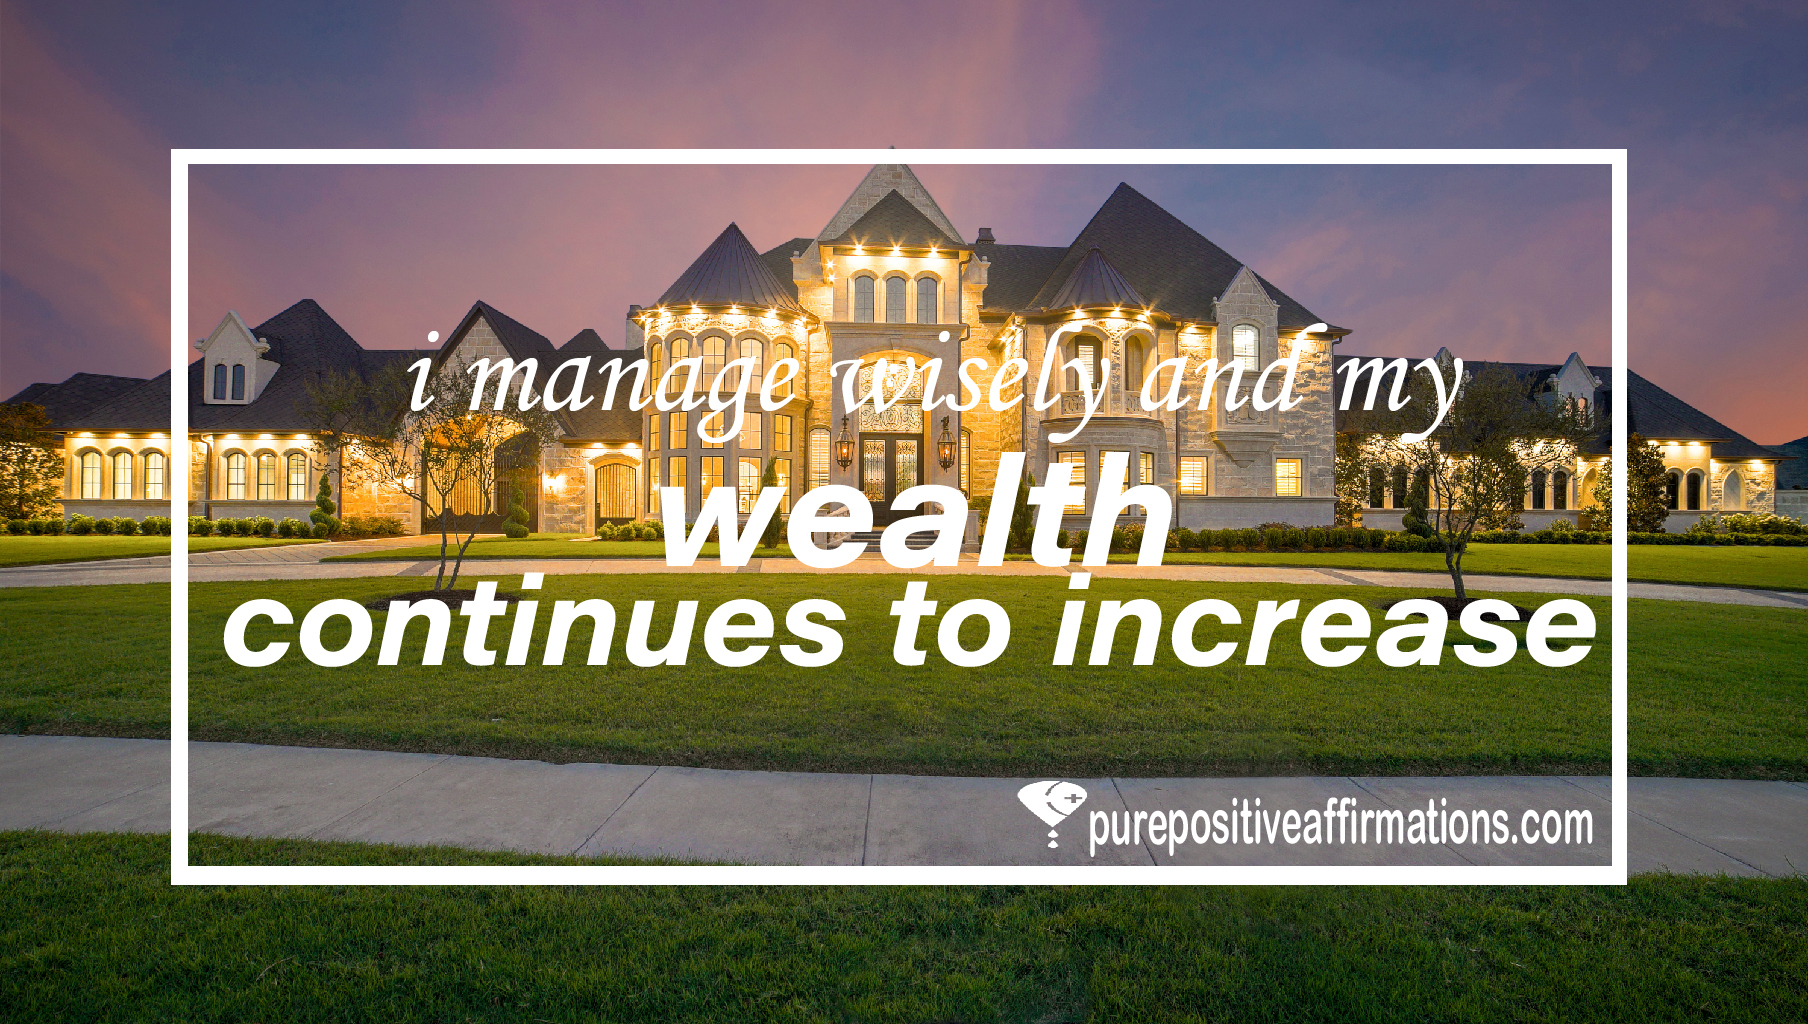 I manage wisely and my wealth continues to increase